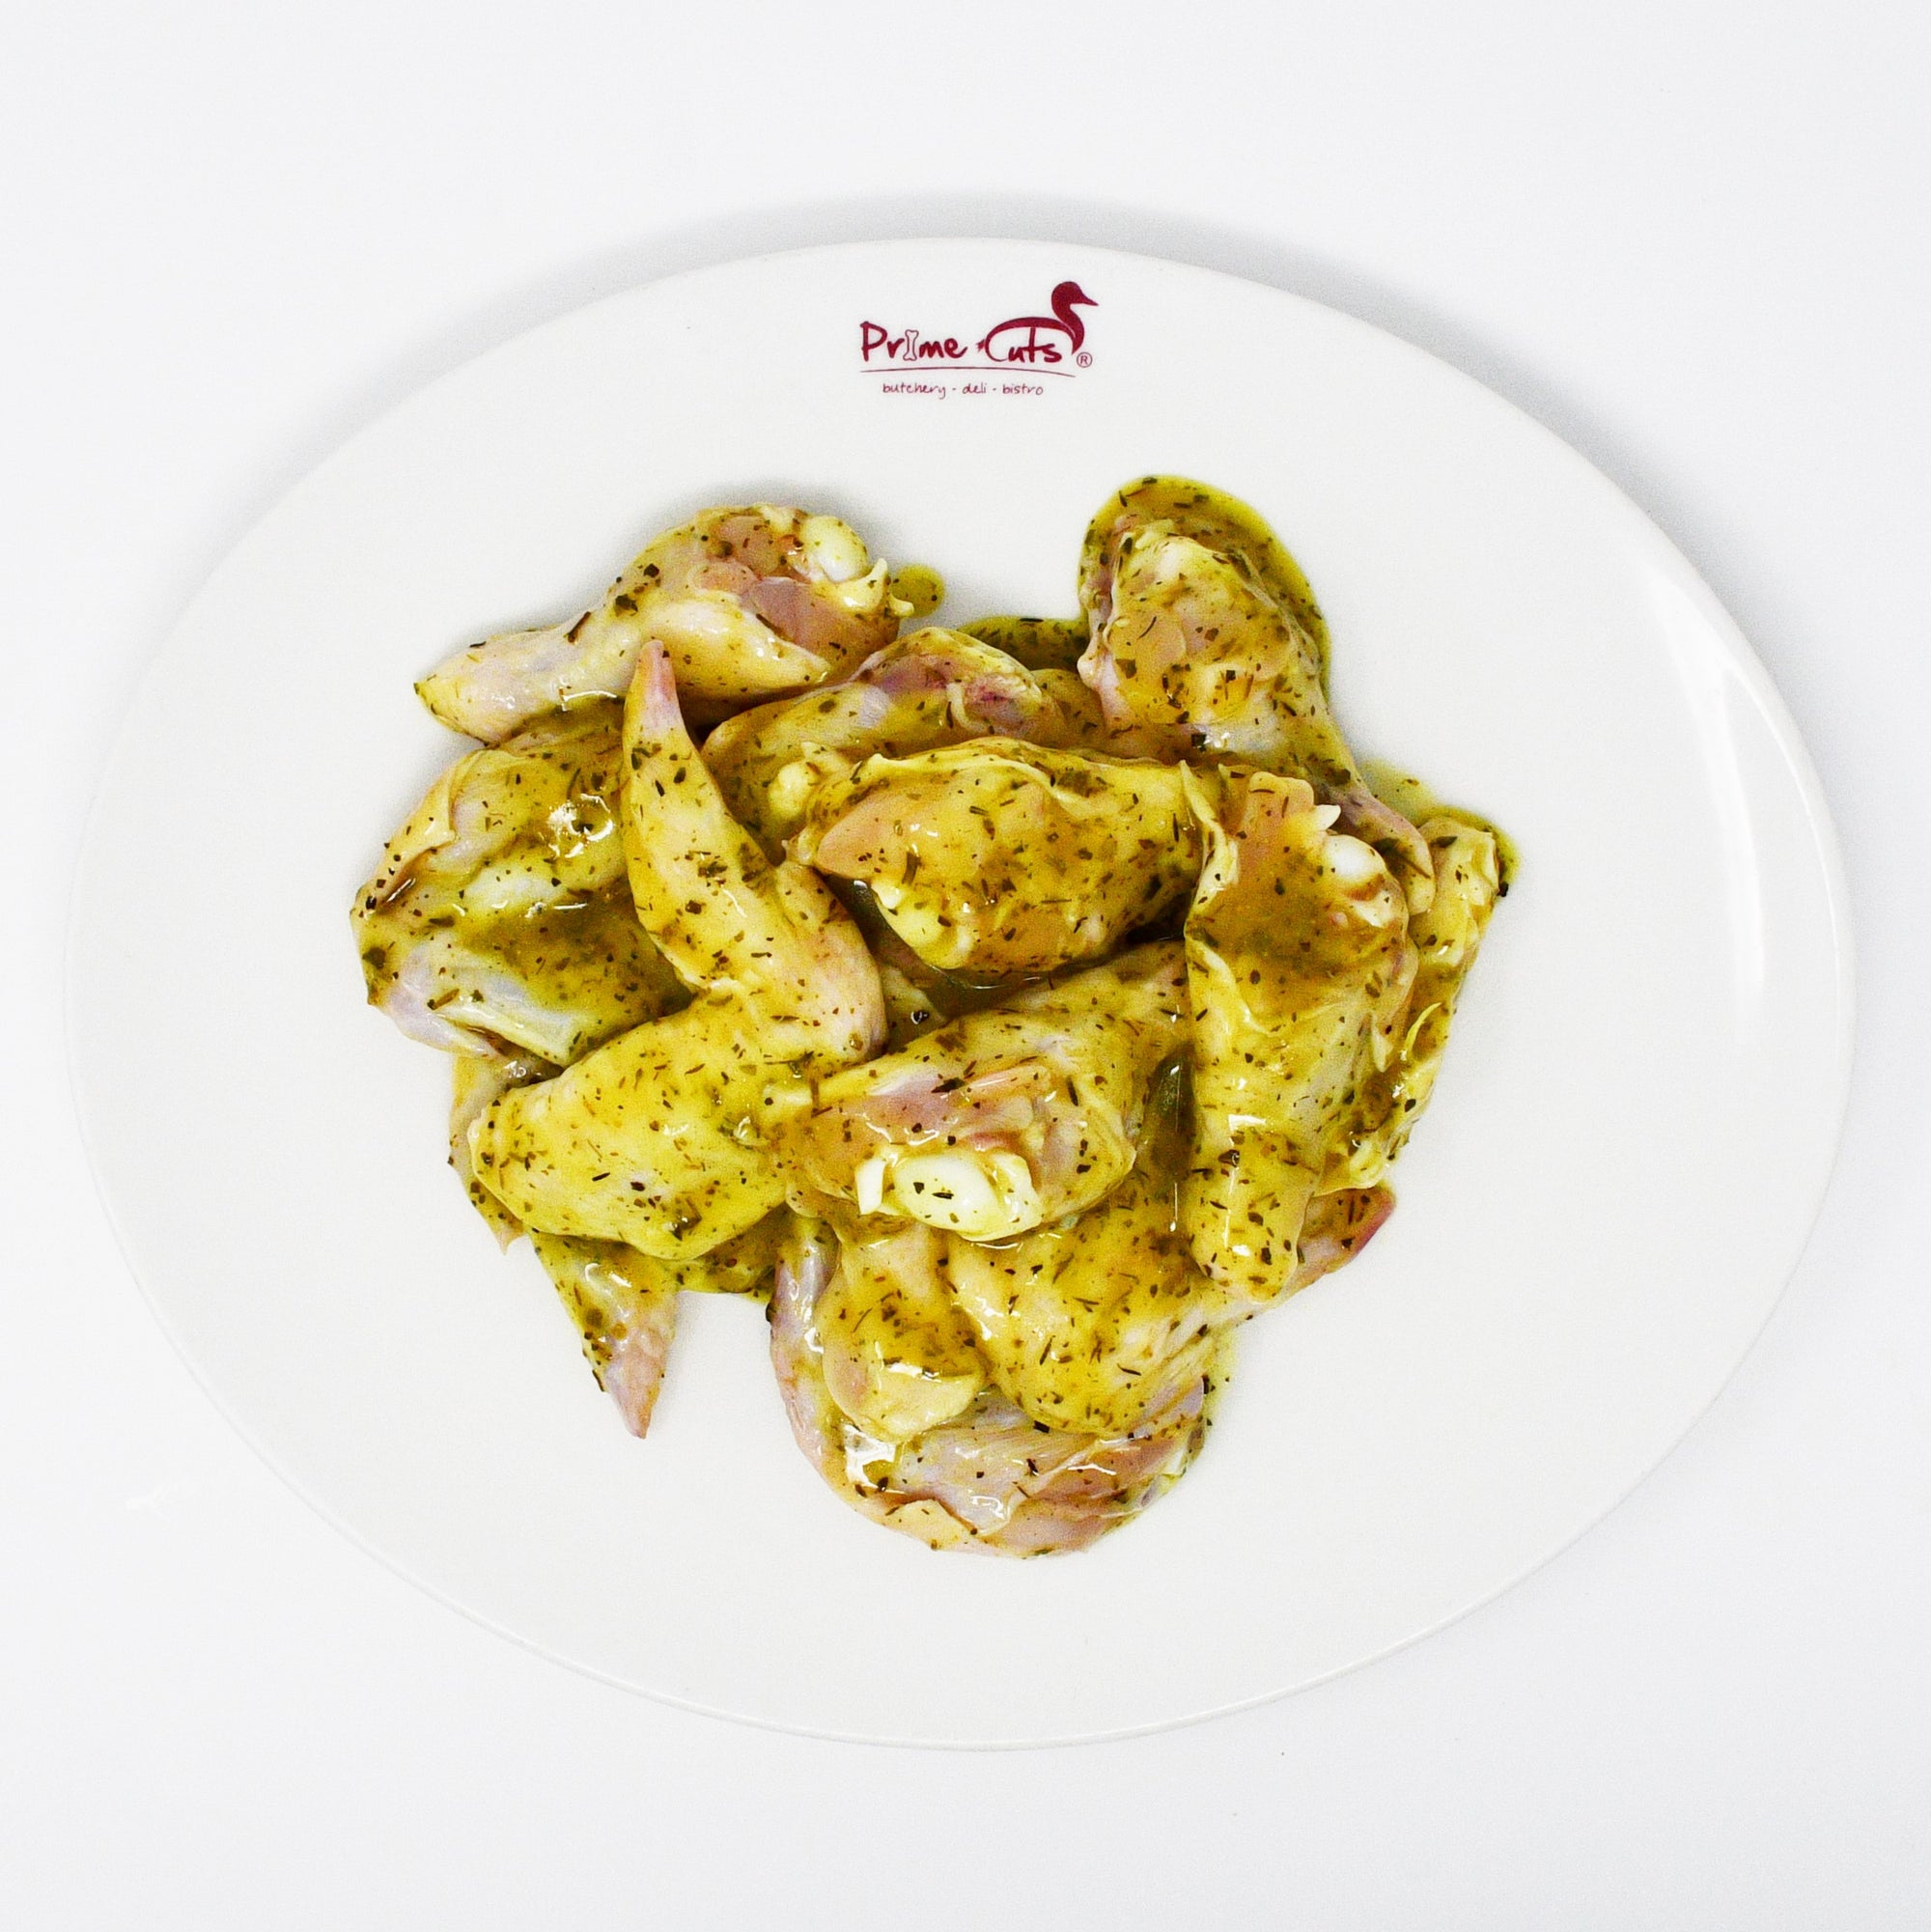 LEMON & HERB CHICKEN WINGS (16pcs) SPECIAL OFFER 15% OFF